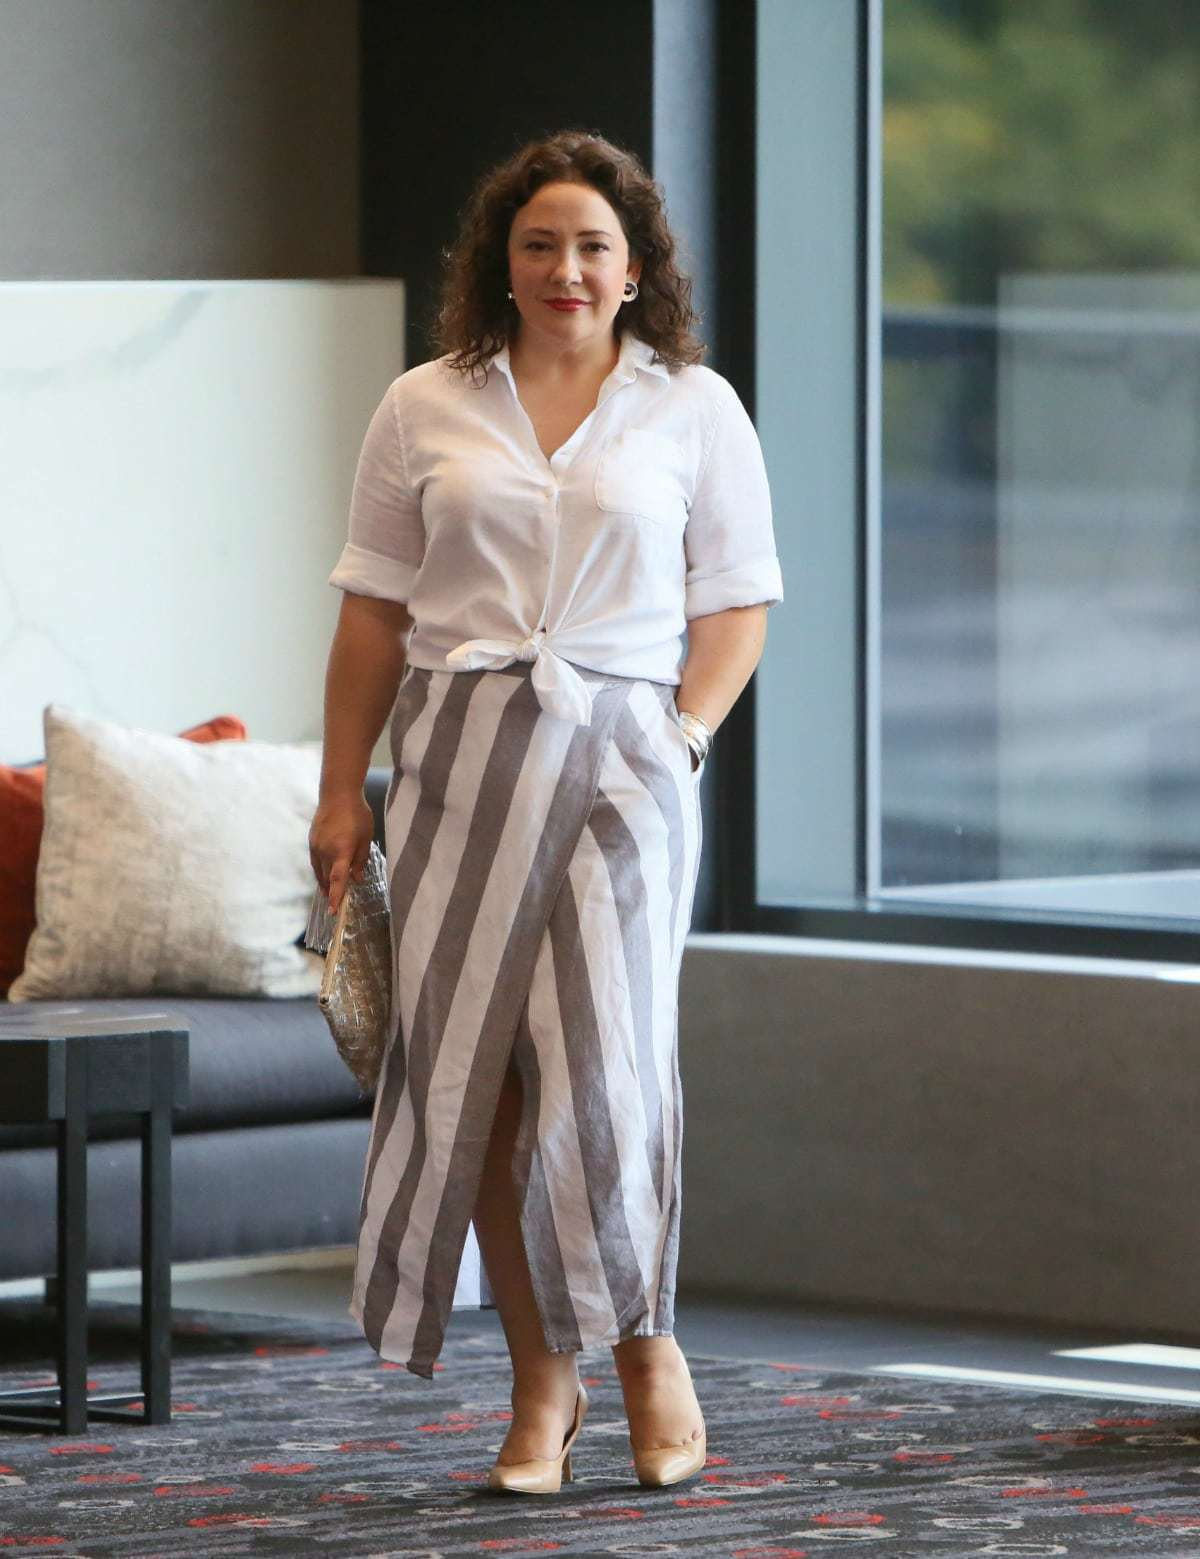 Madewell linen stripe skirt on Wardrobe Oxygen, styled with a white linen shirt from Chico's and nude pumps